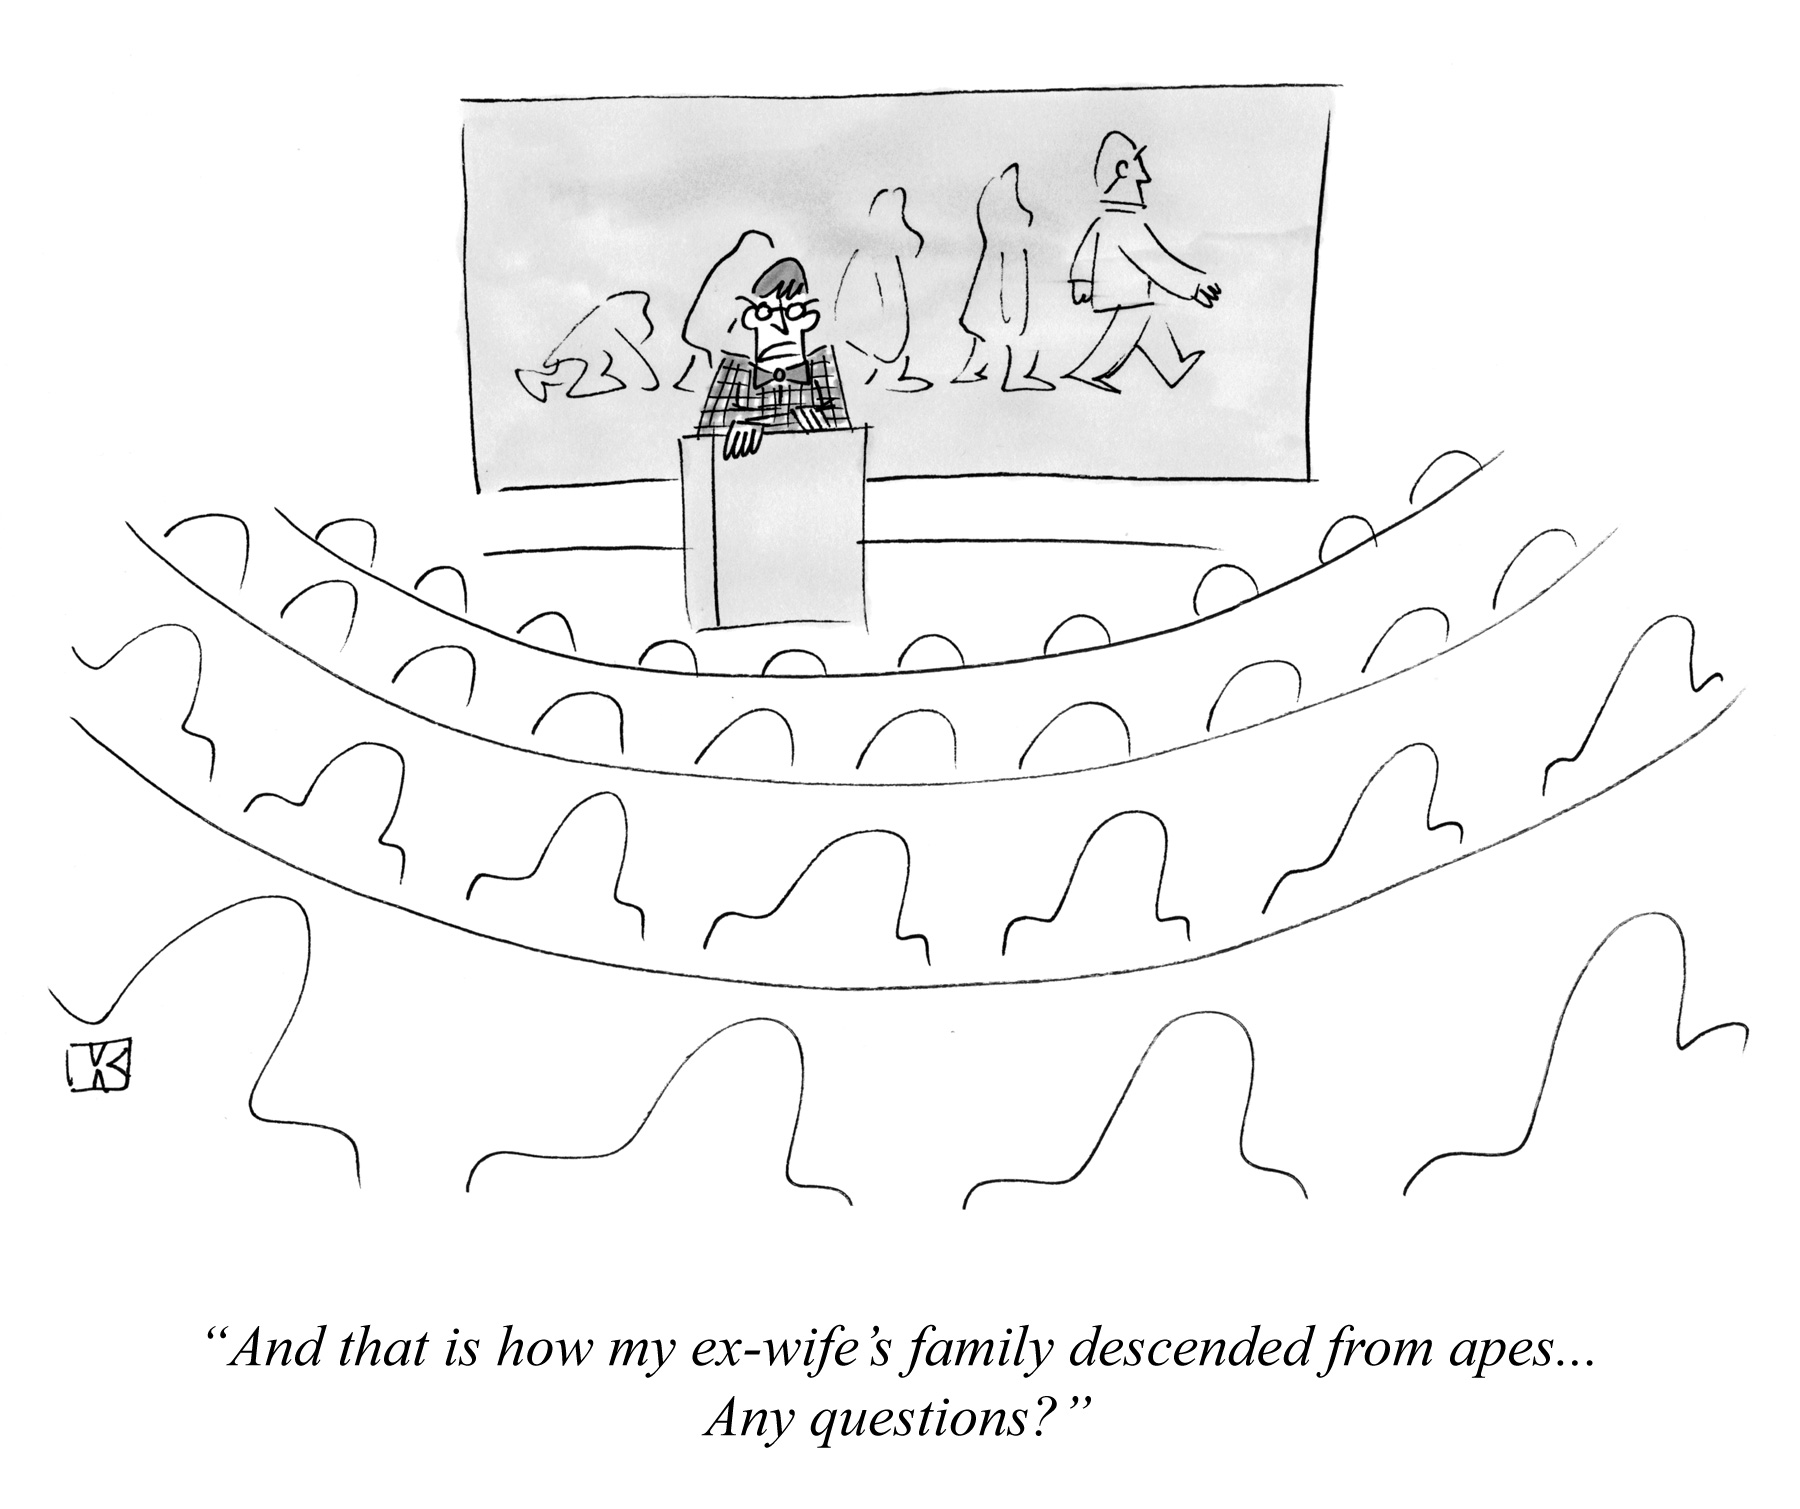 And that is how my ex-wife's family descended from apes... Any questions?